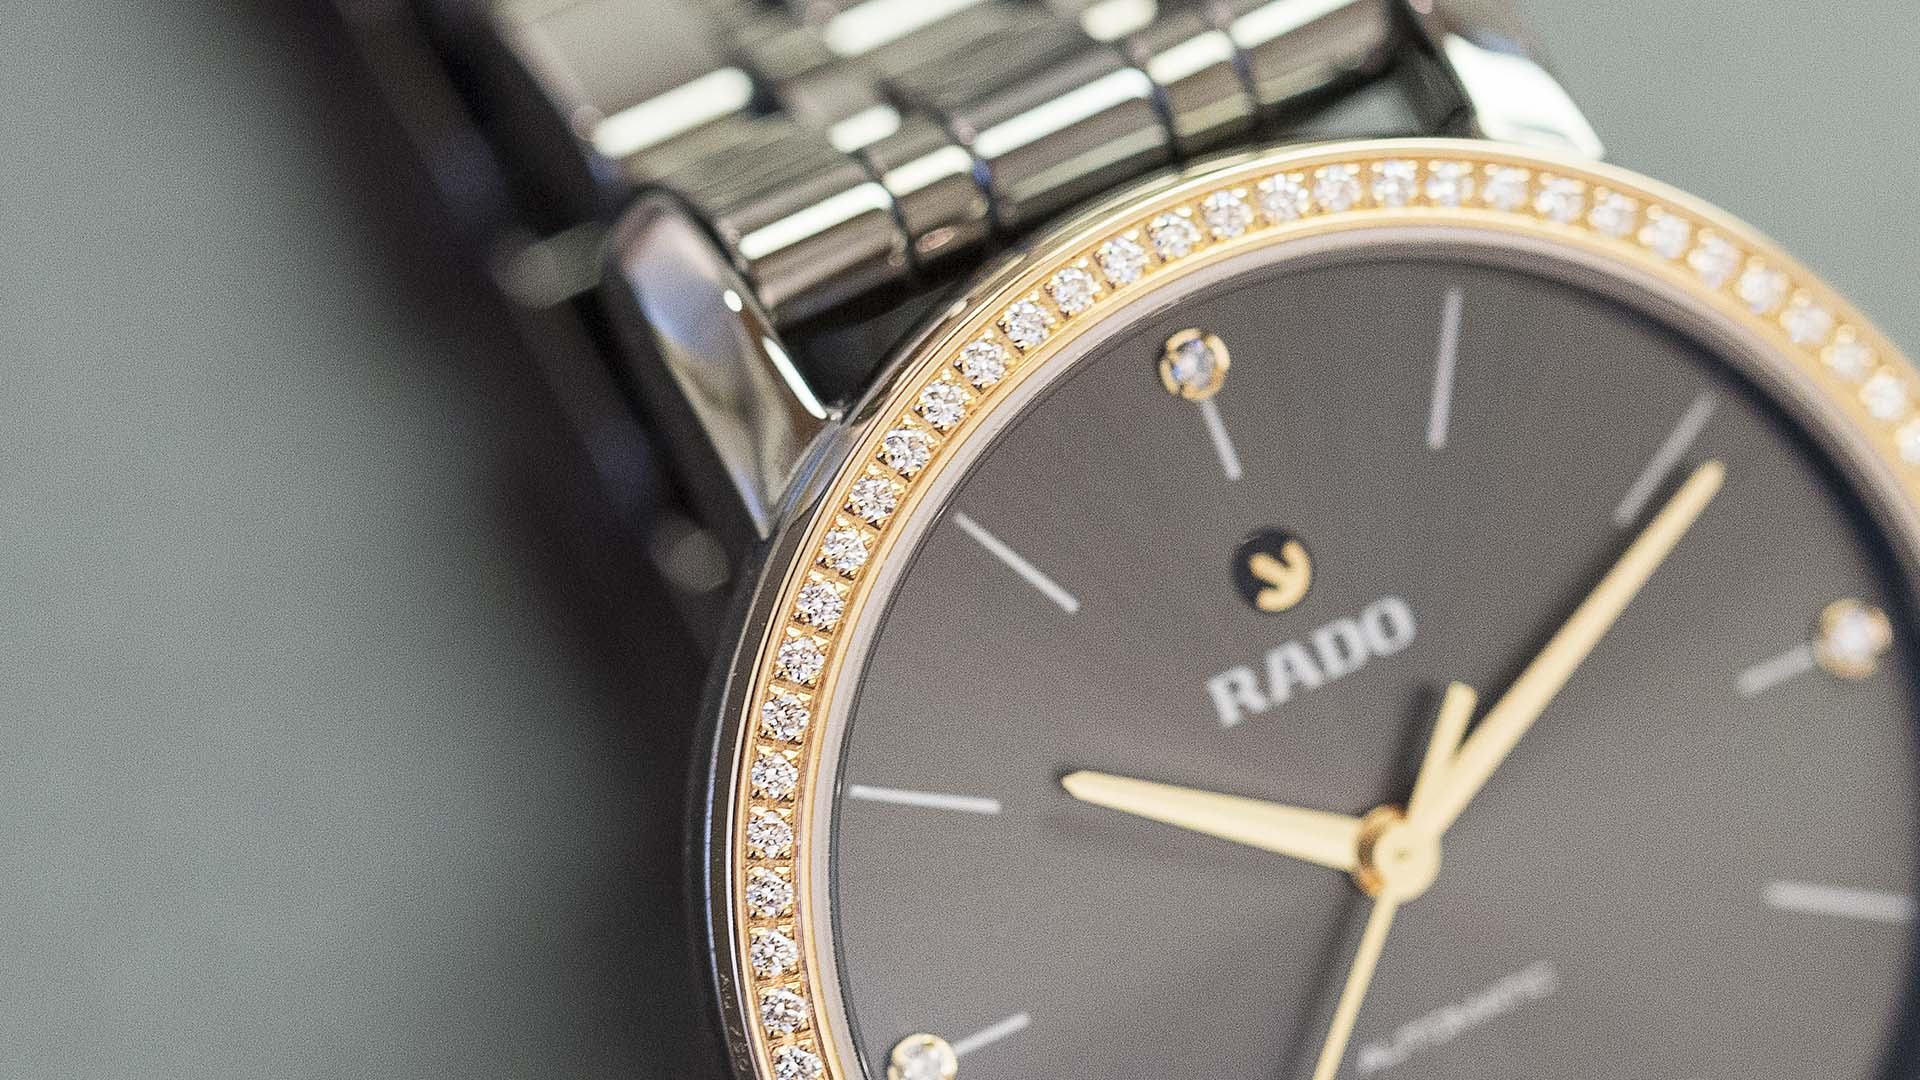 RADO_-HyperChrome_Automatic_Diamonds_01-580-0523-3-010-6-.jpg